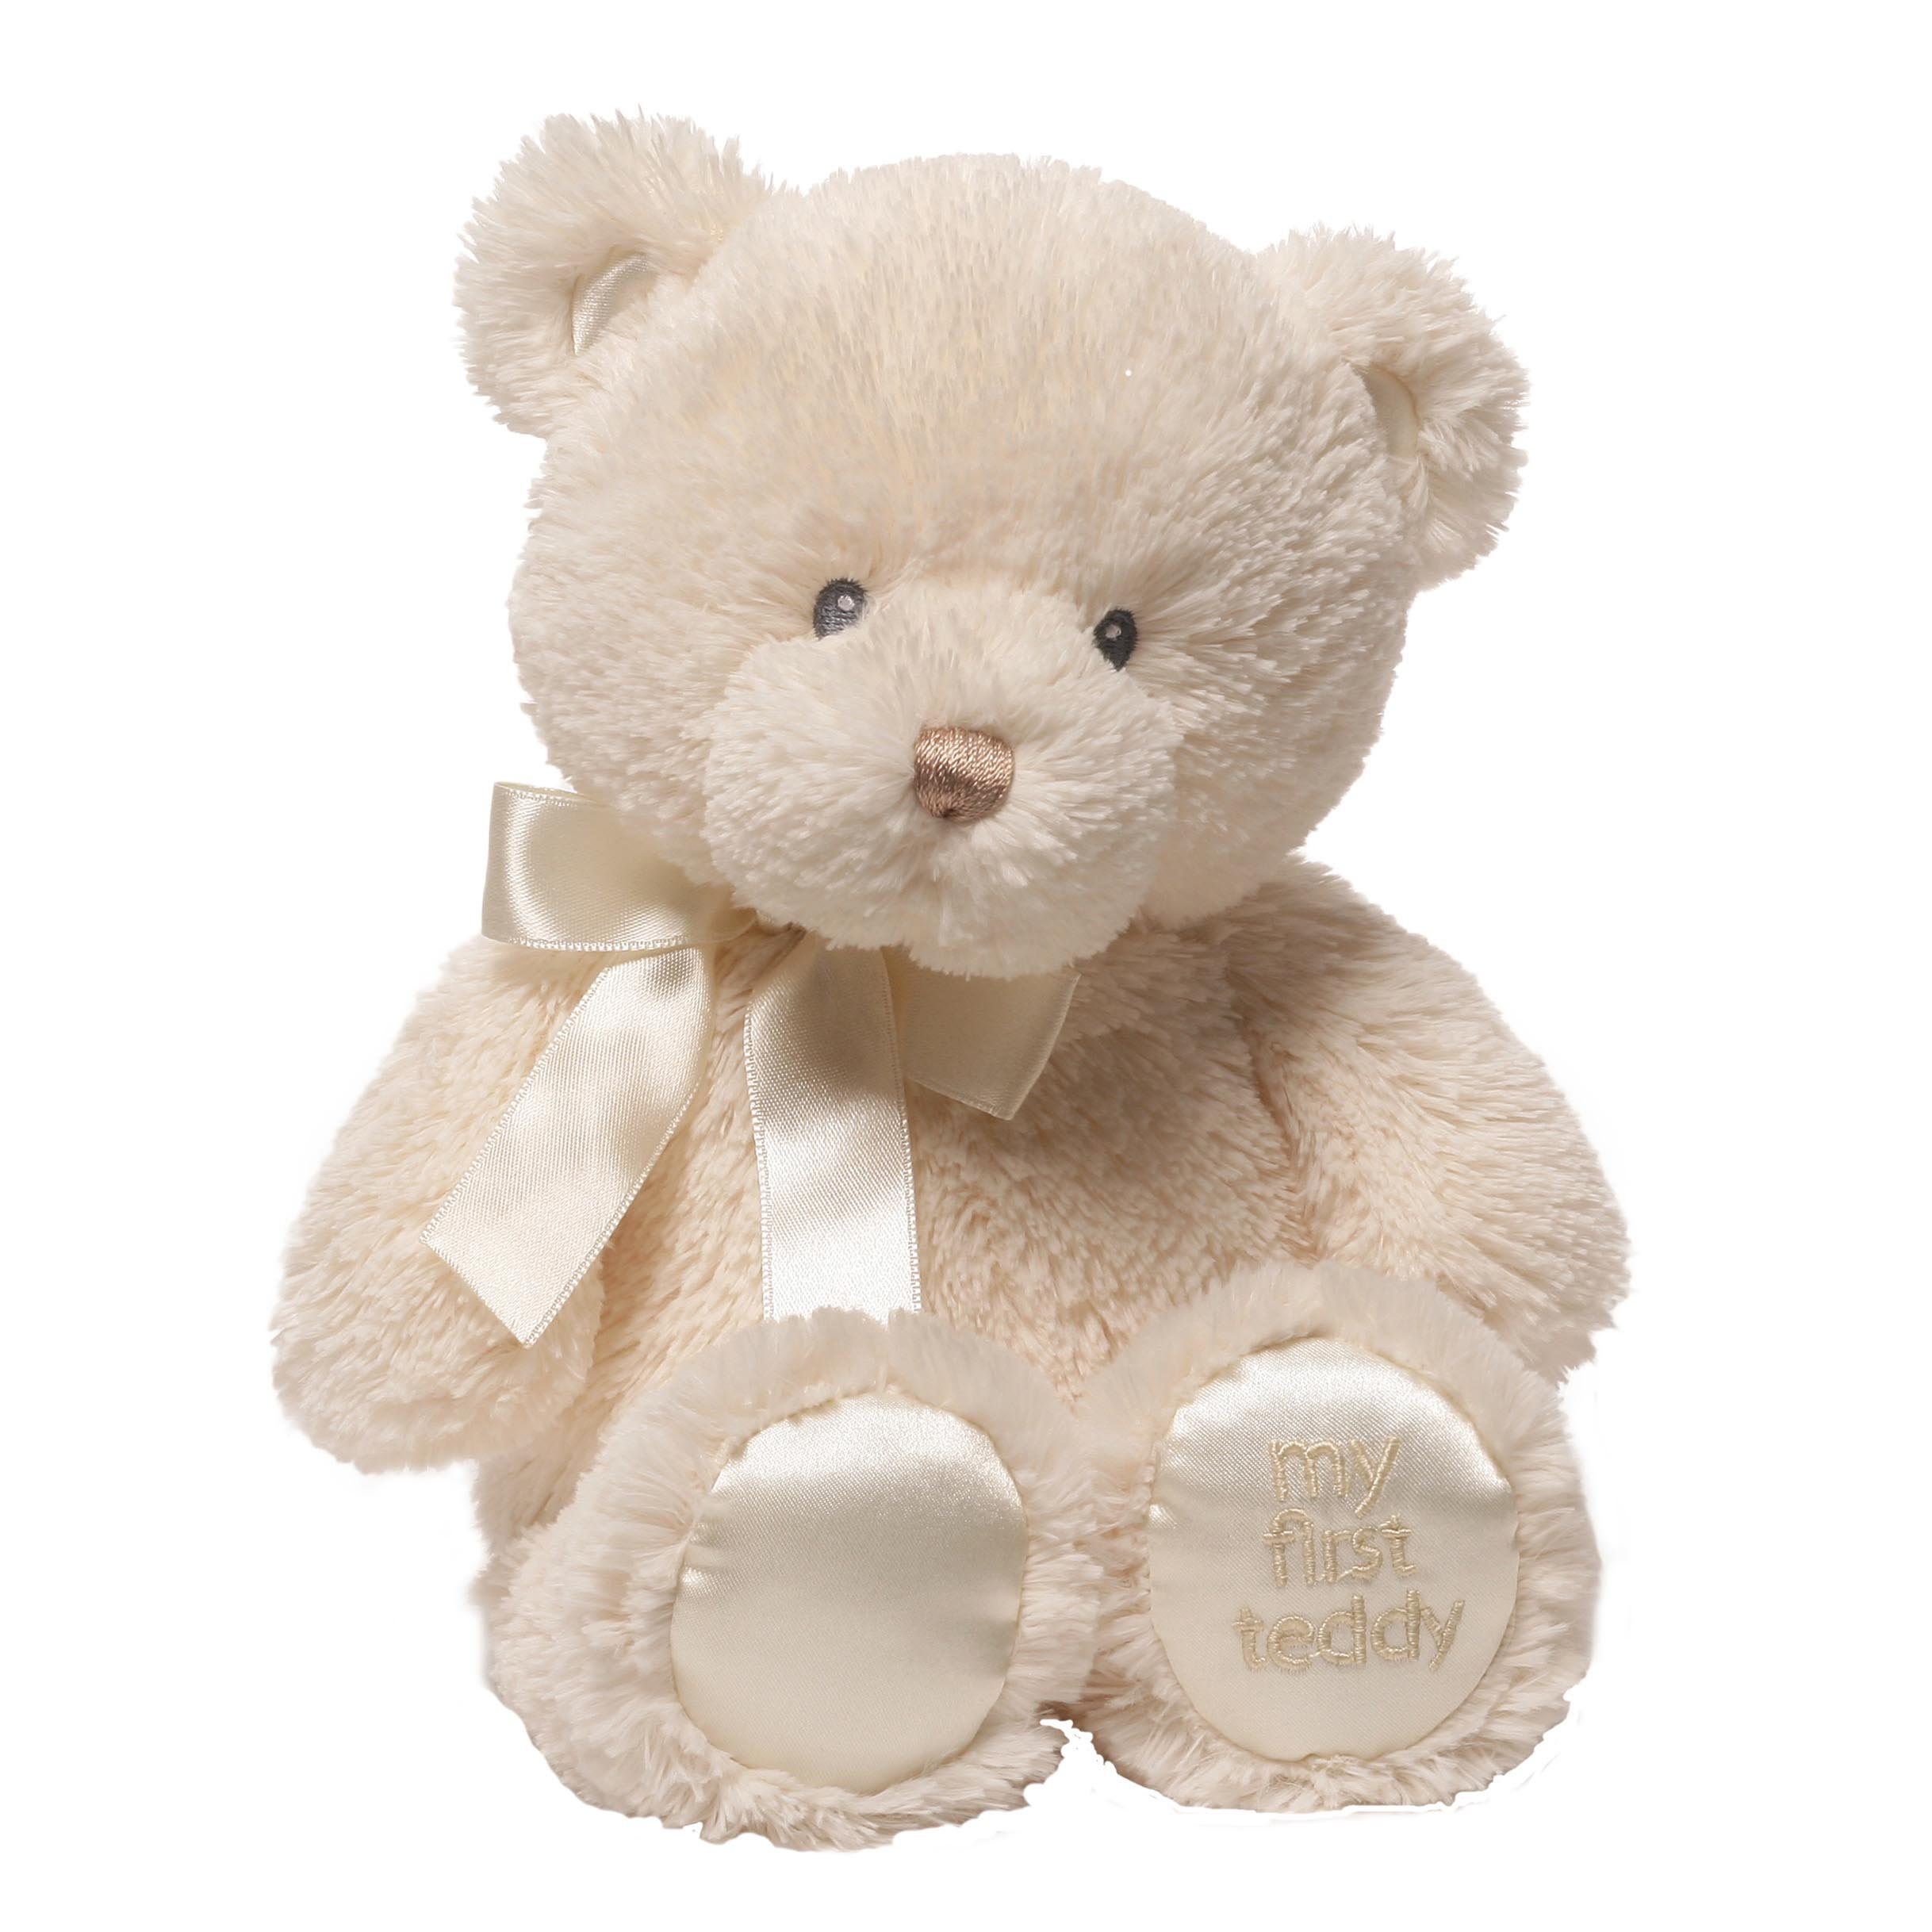 Gund Baby My 1st Teddy Plush, Cream, 10""